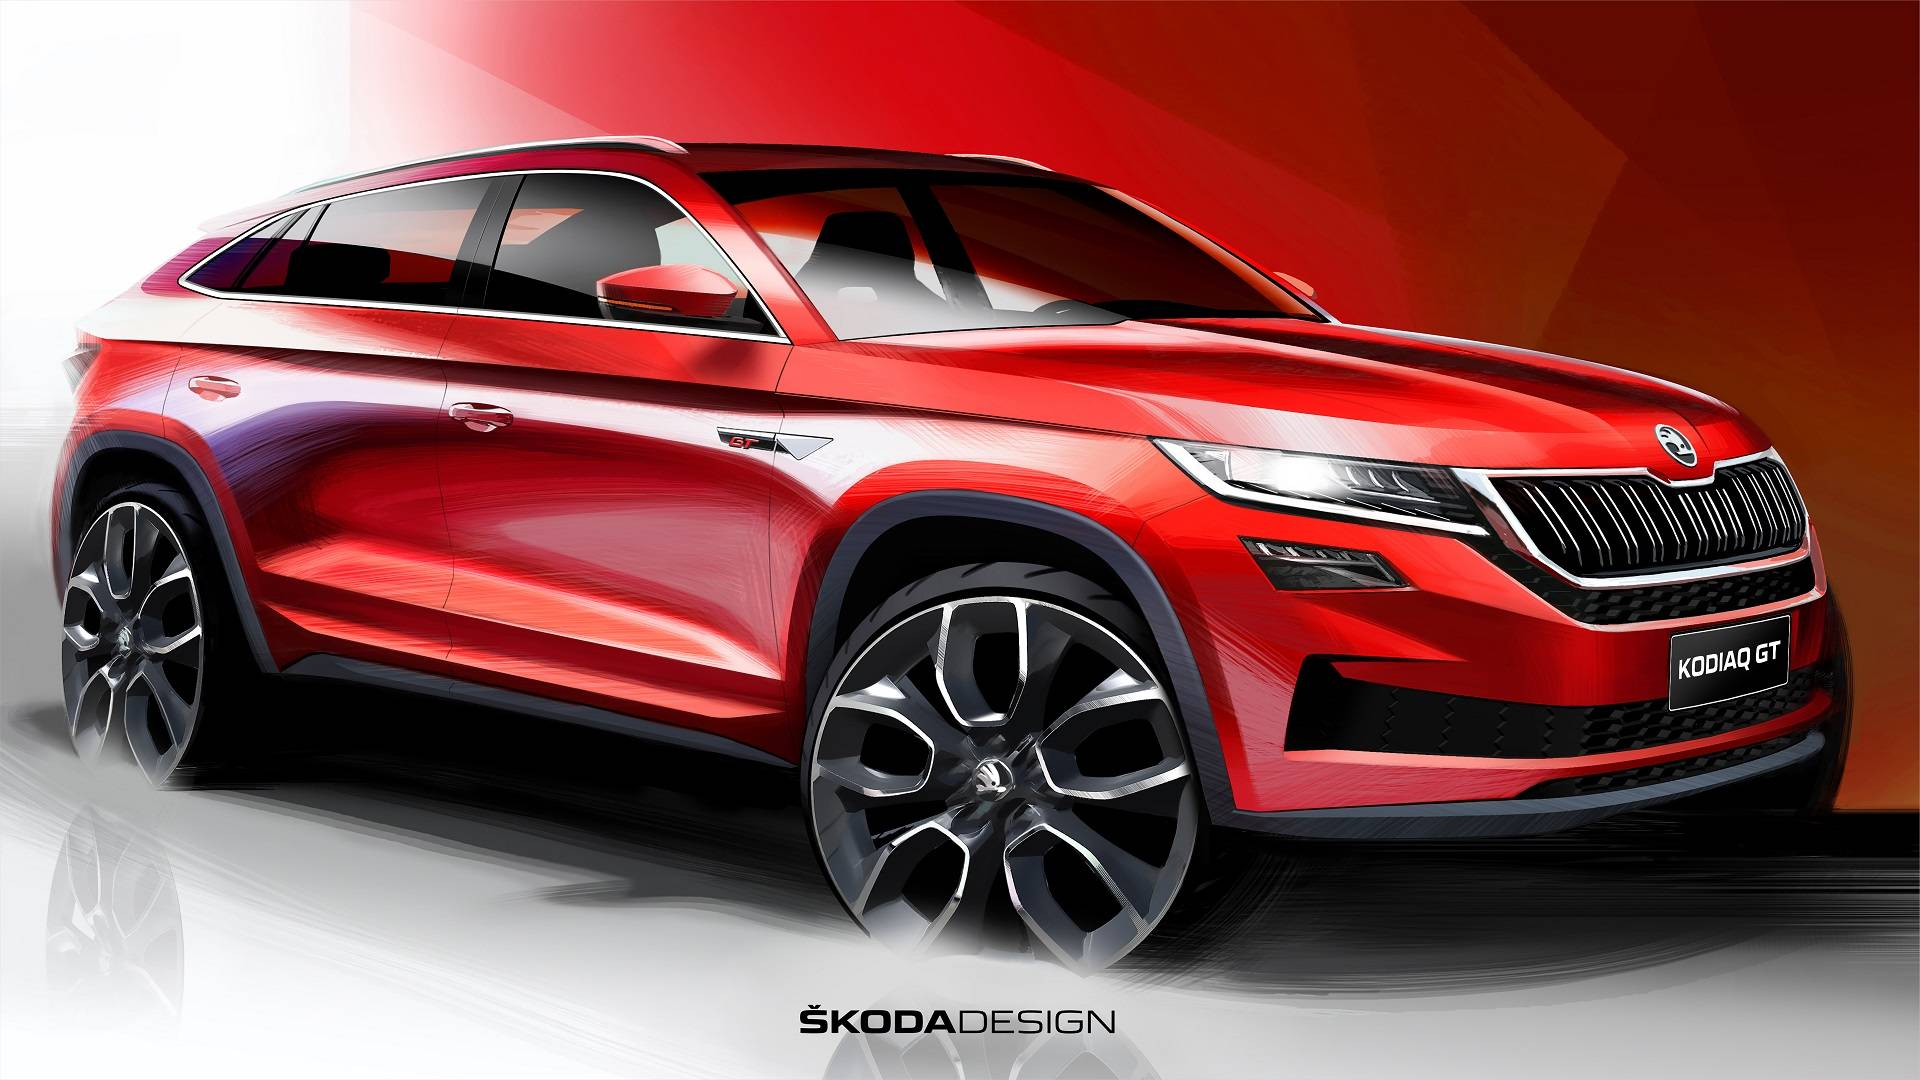 skoda kodiaq gt 2018 un coup suv r serv pour la chine photo 4 l 39 argus. Black Bedroom Furniture Sets. Home Design Ideas